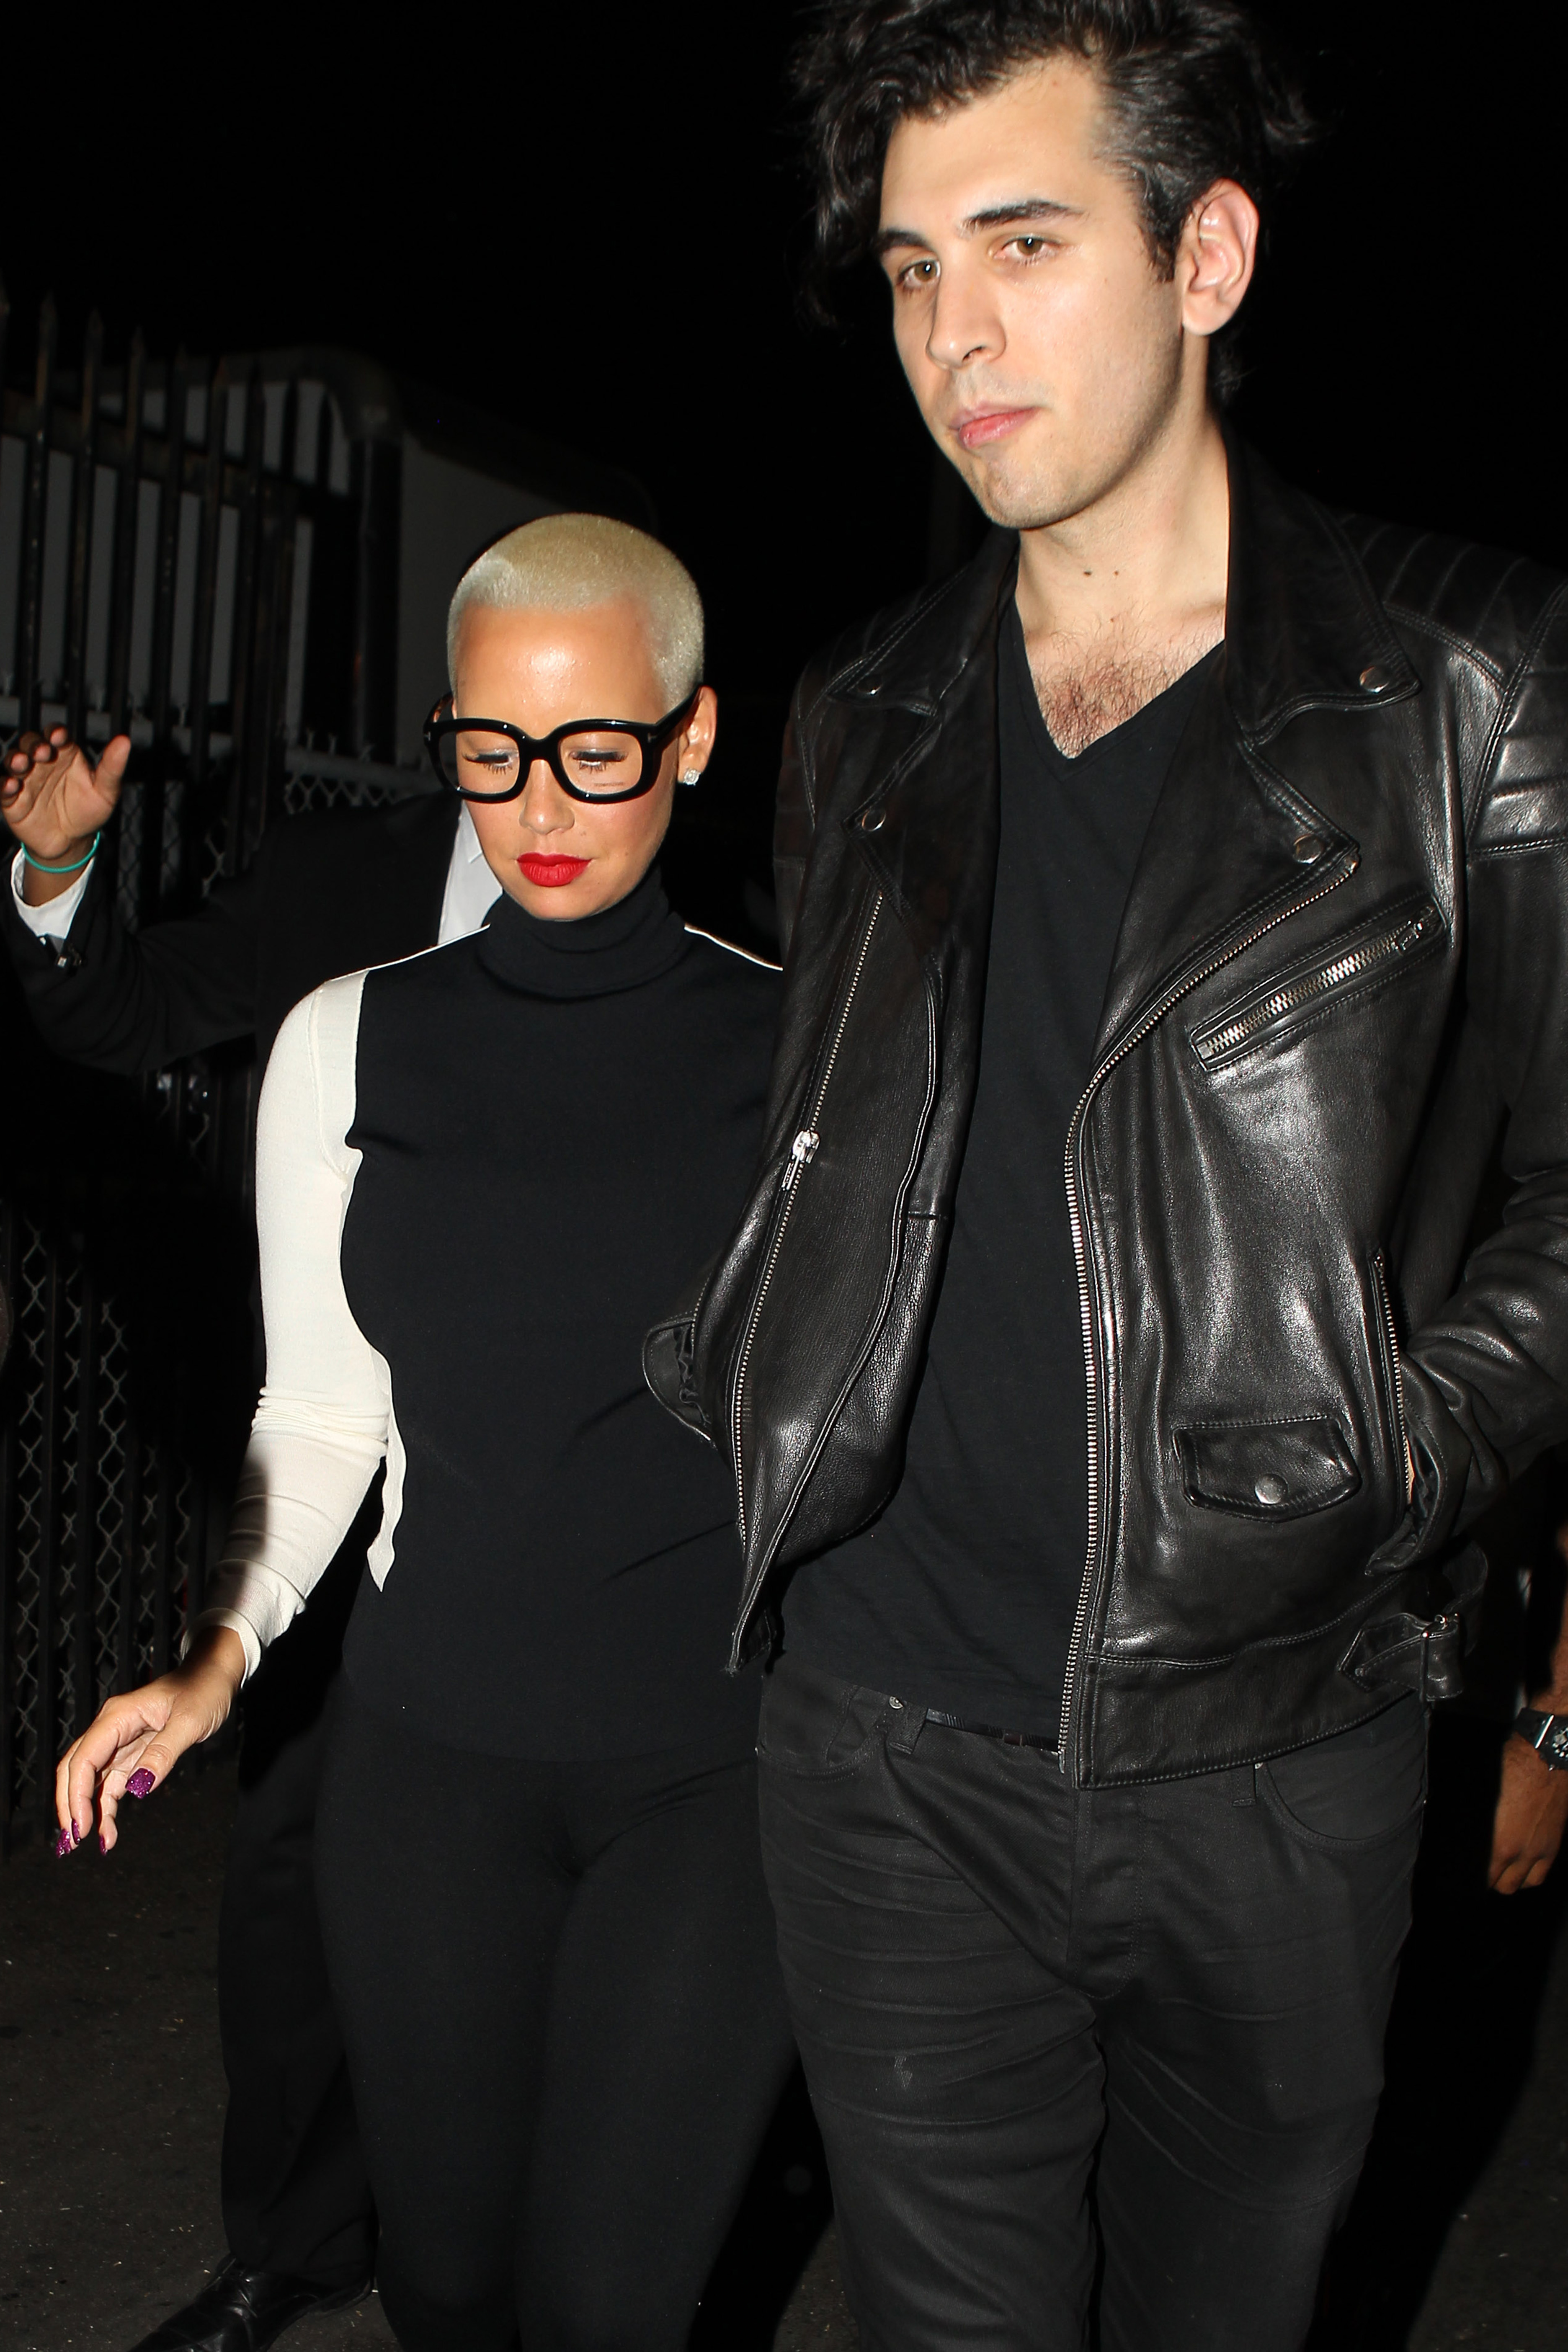 Amber Rose and Nick Simmons leave Playhouse together - Part 2